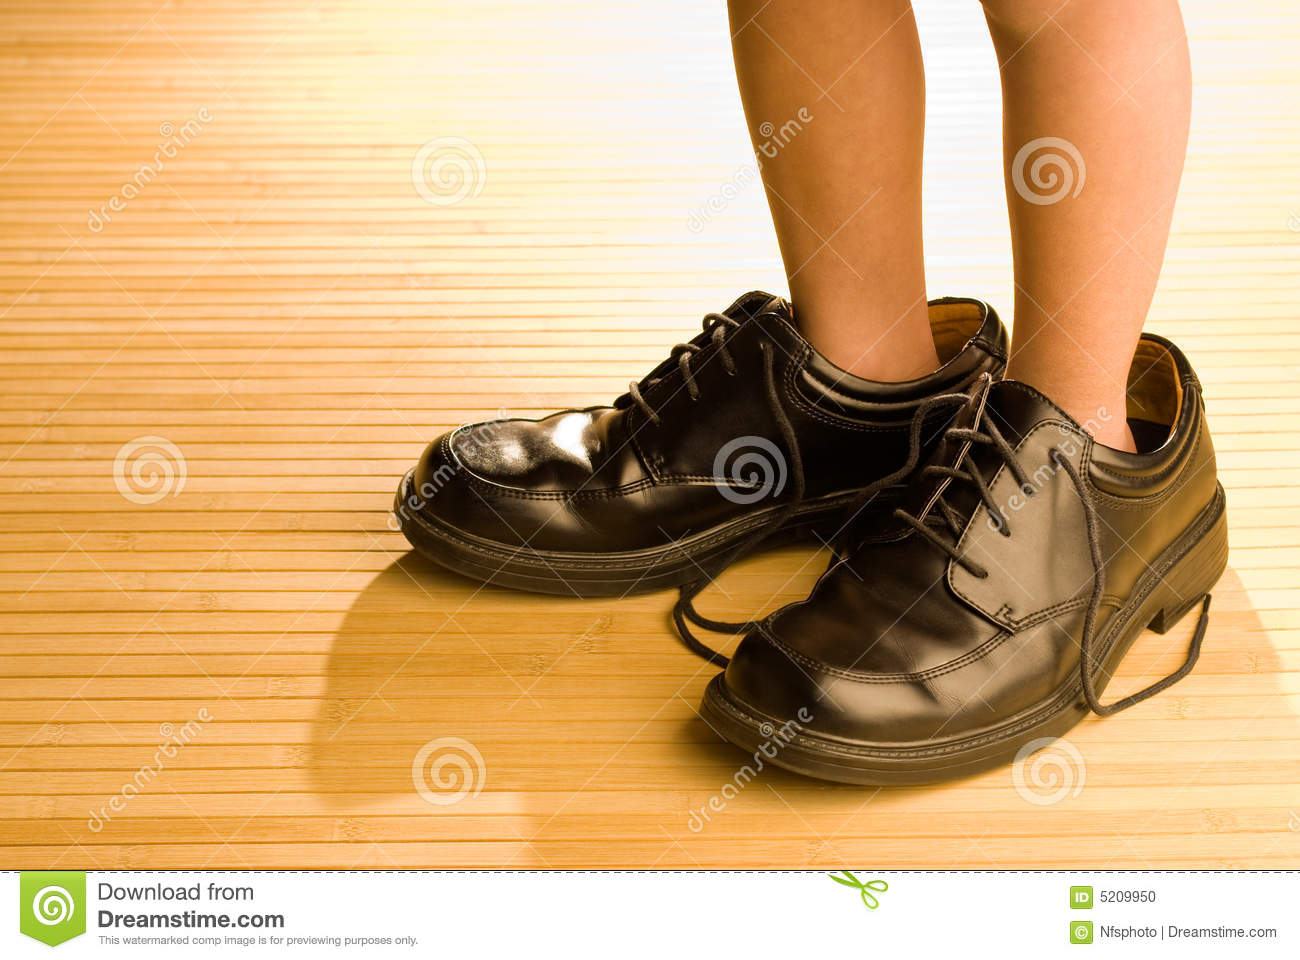 Big shoes to fill, child s feet in large black shoes